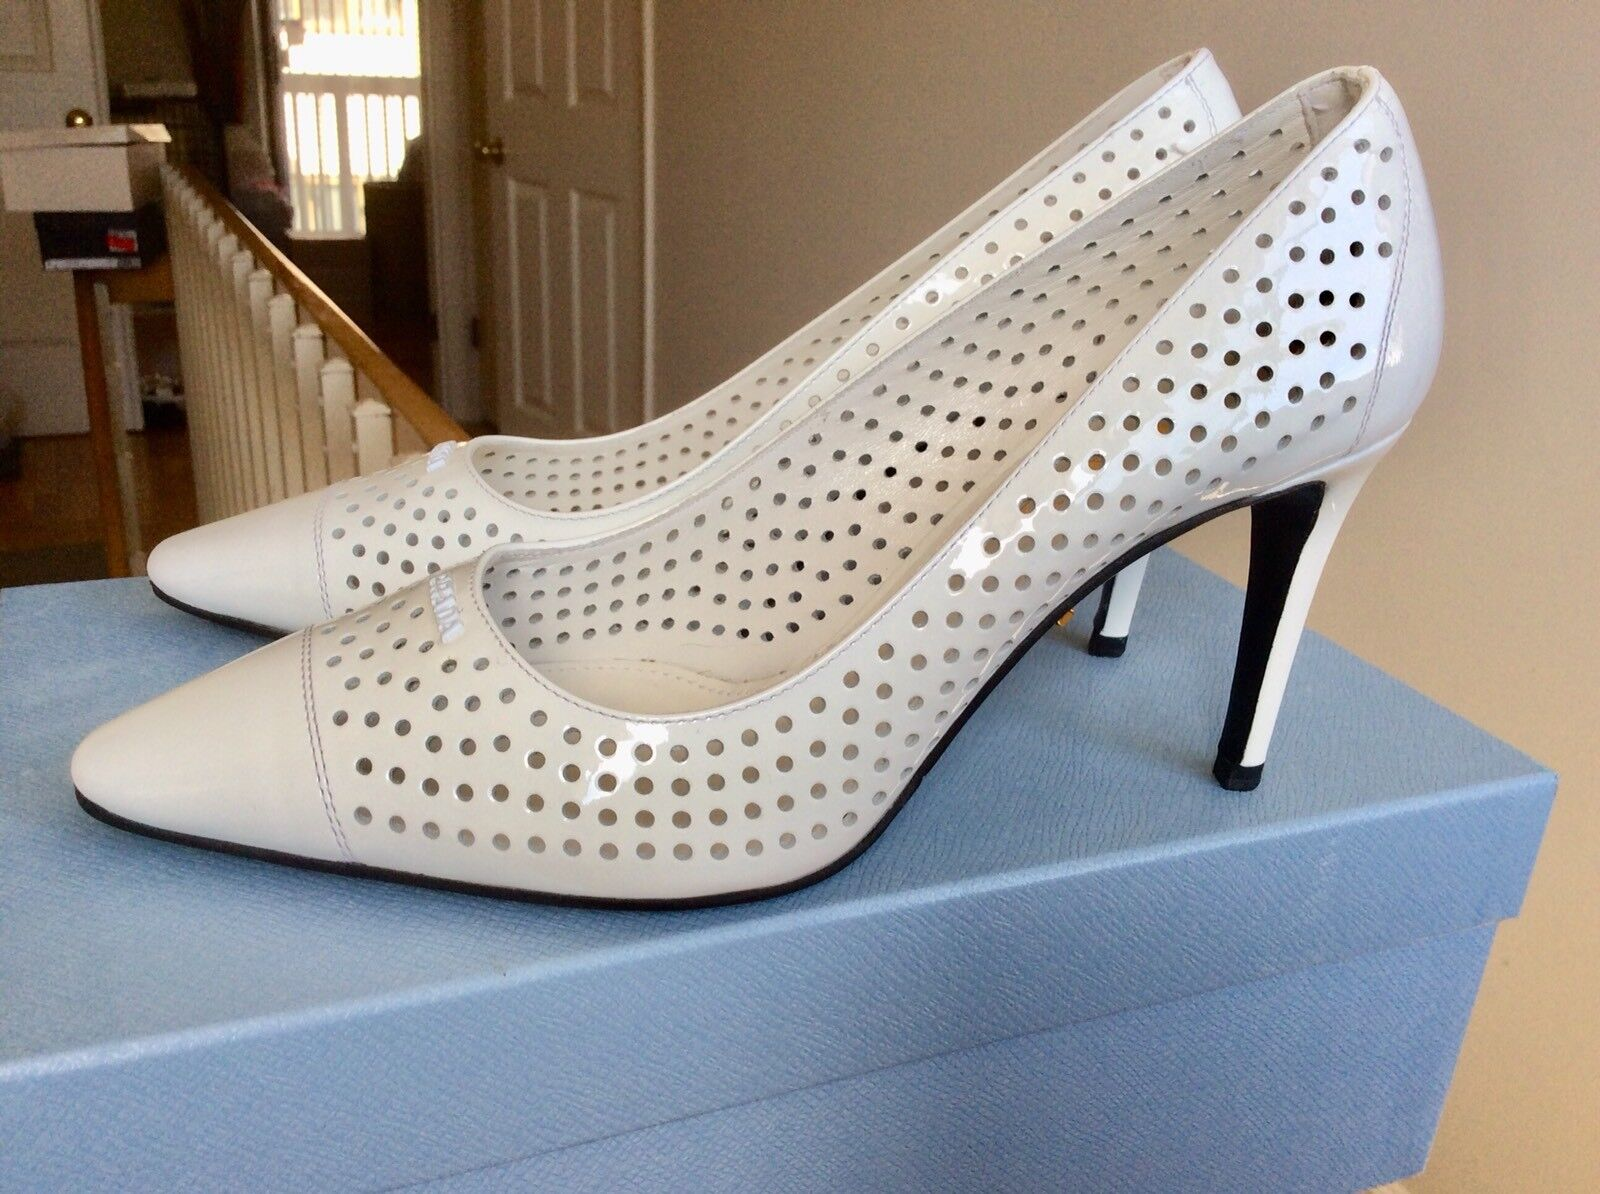 Womens Prada shoes shoes shoes Heels Pumps White Perforated Vernice Patent Leather Sz 36 NIB 80242a